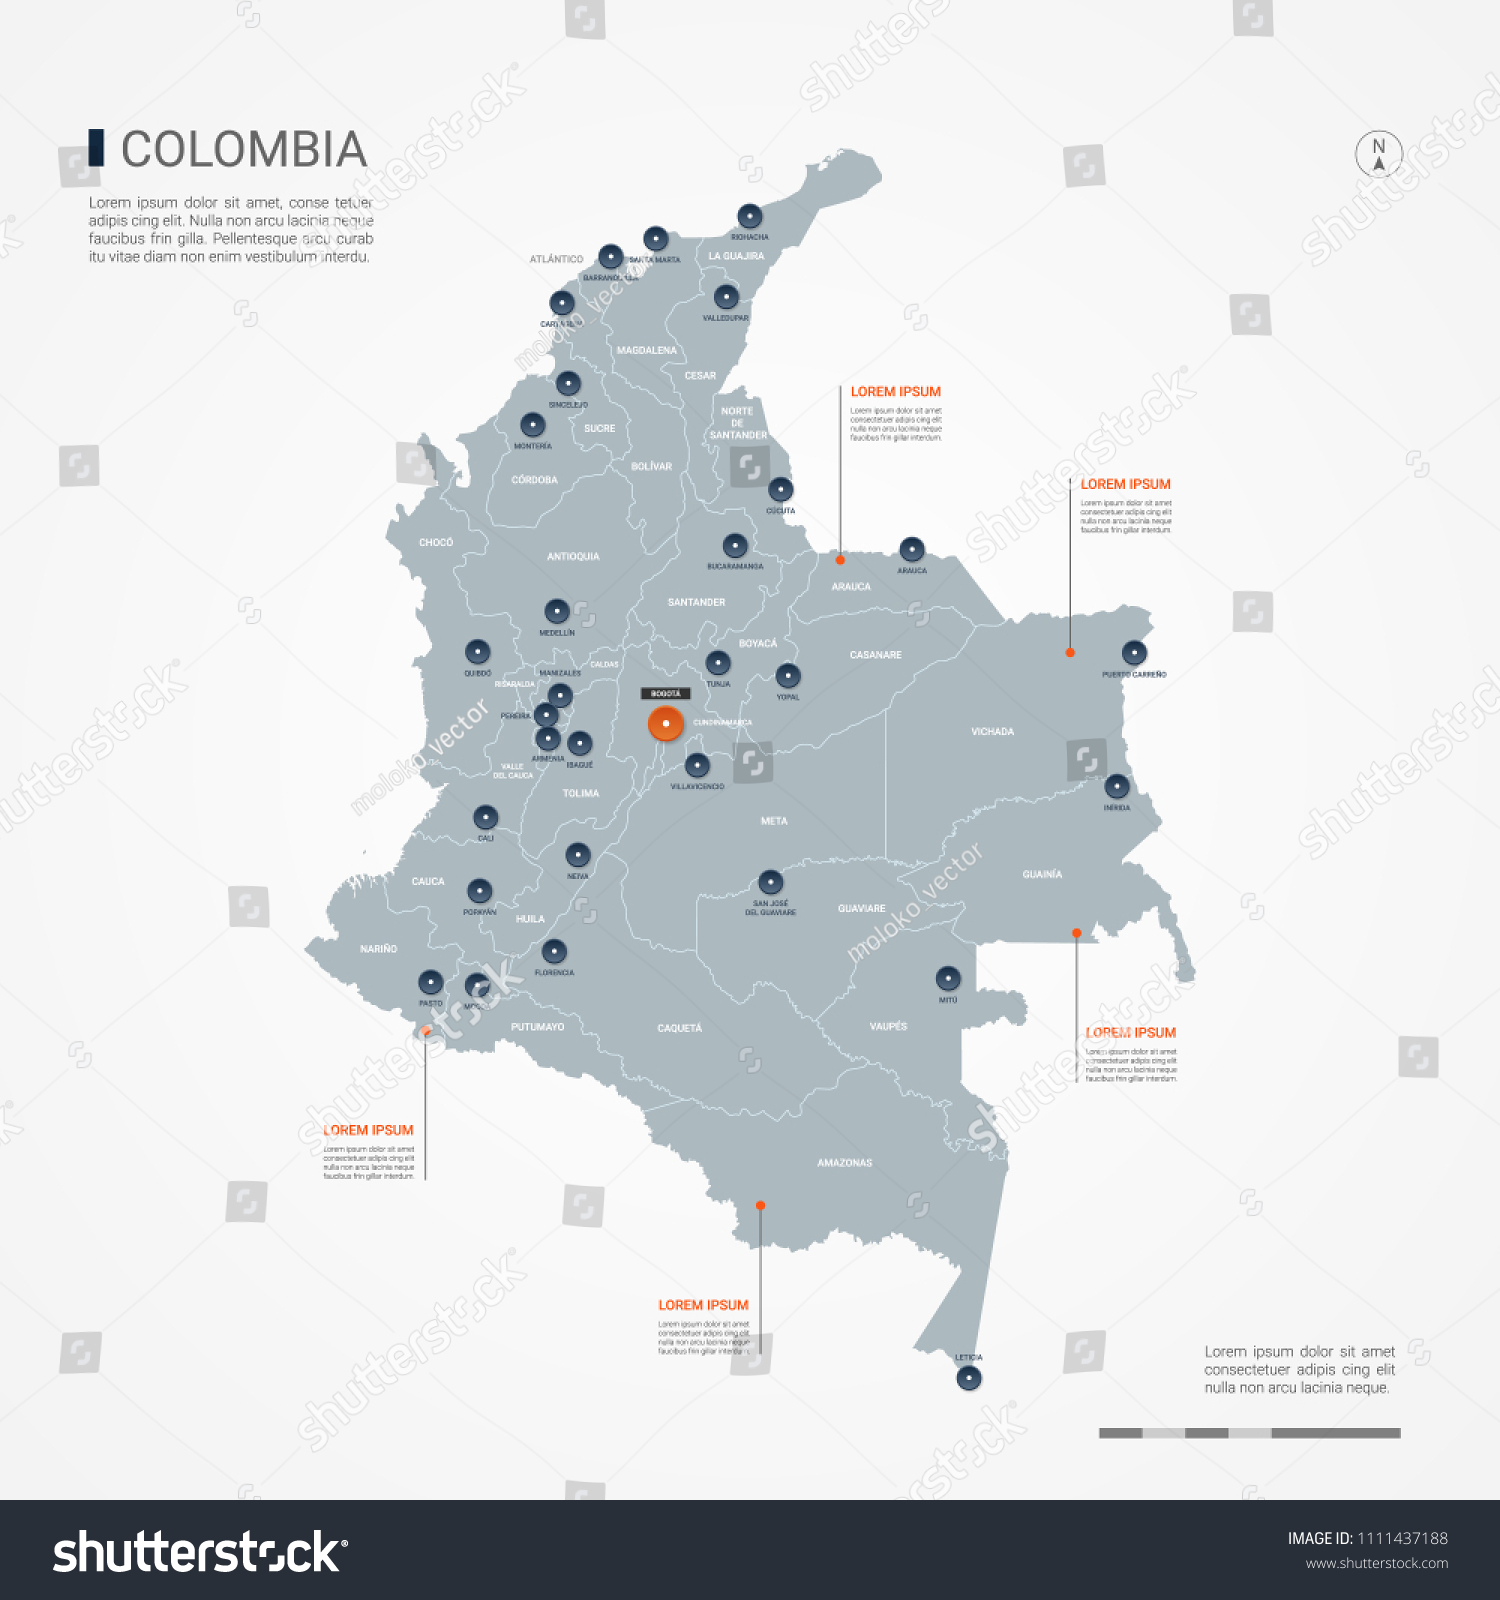 Colombia Map Borders Cities Capital Bogota Stock Vector (Royalty ...